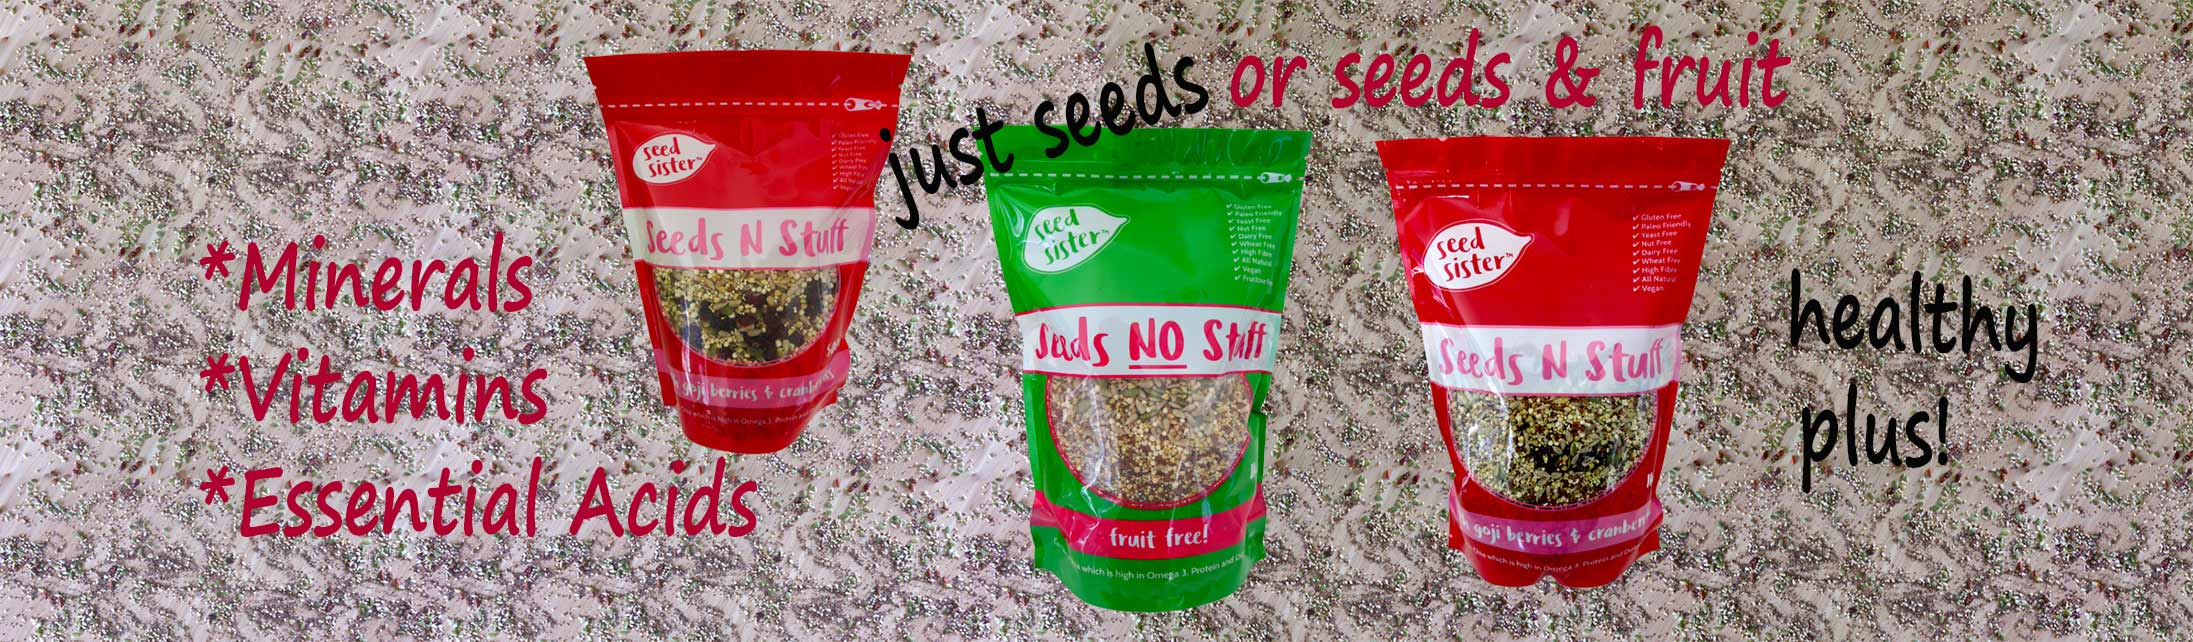 Minerals, Vitamins and Essential Acids are some of the benefits with Seed Sister packaged Seeds and Seeds N Fruit.